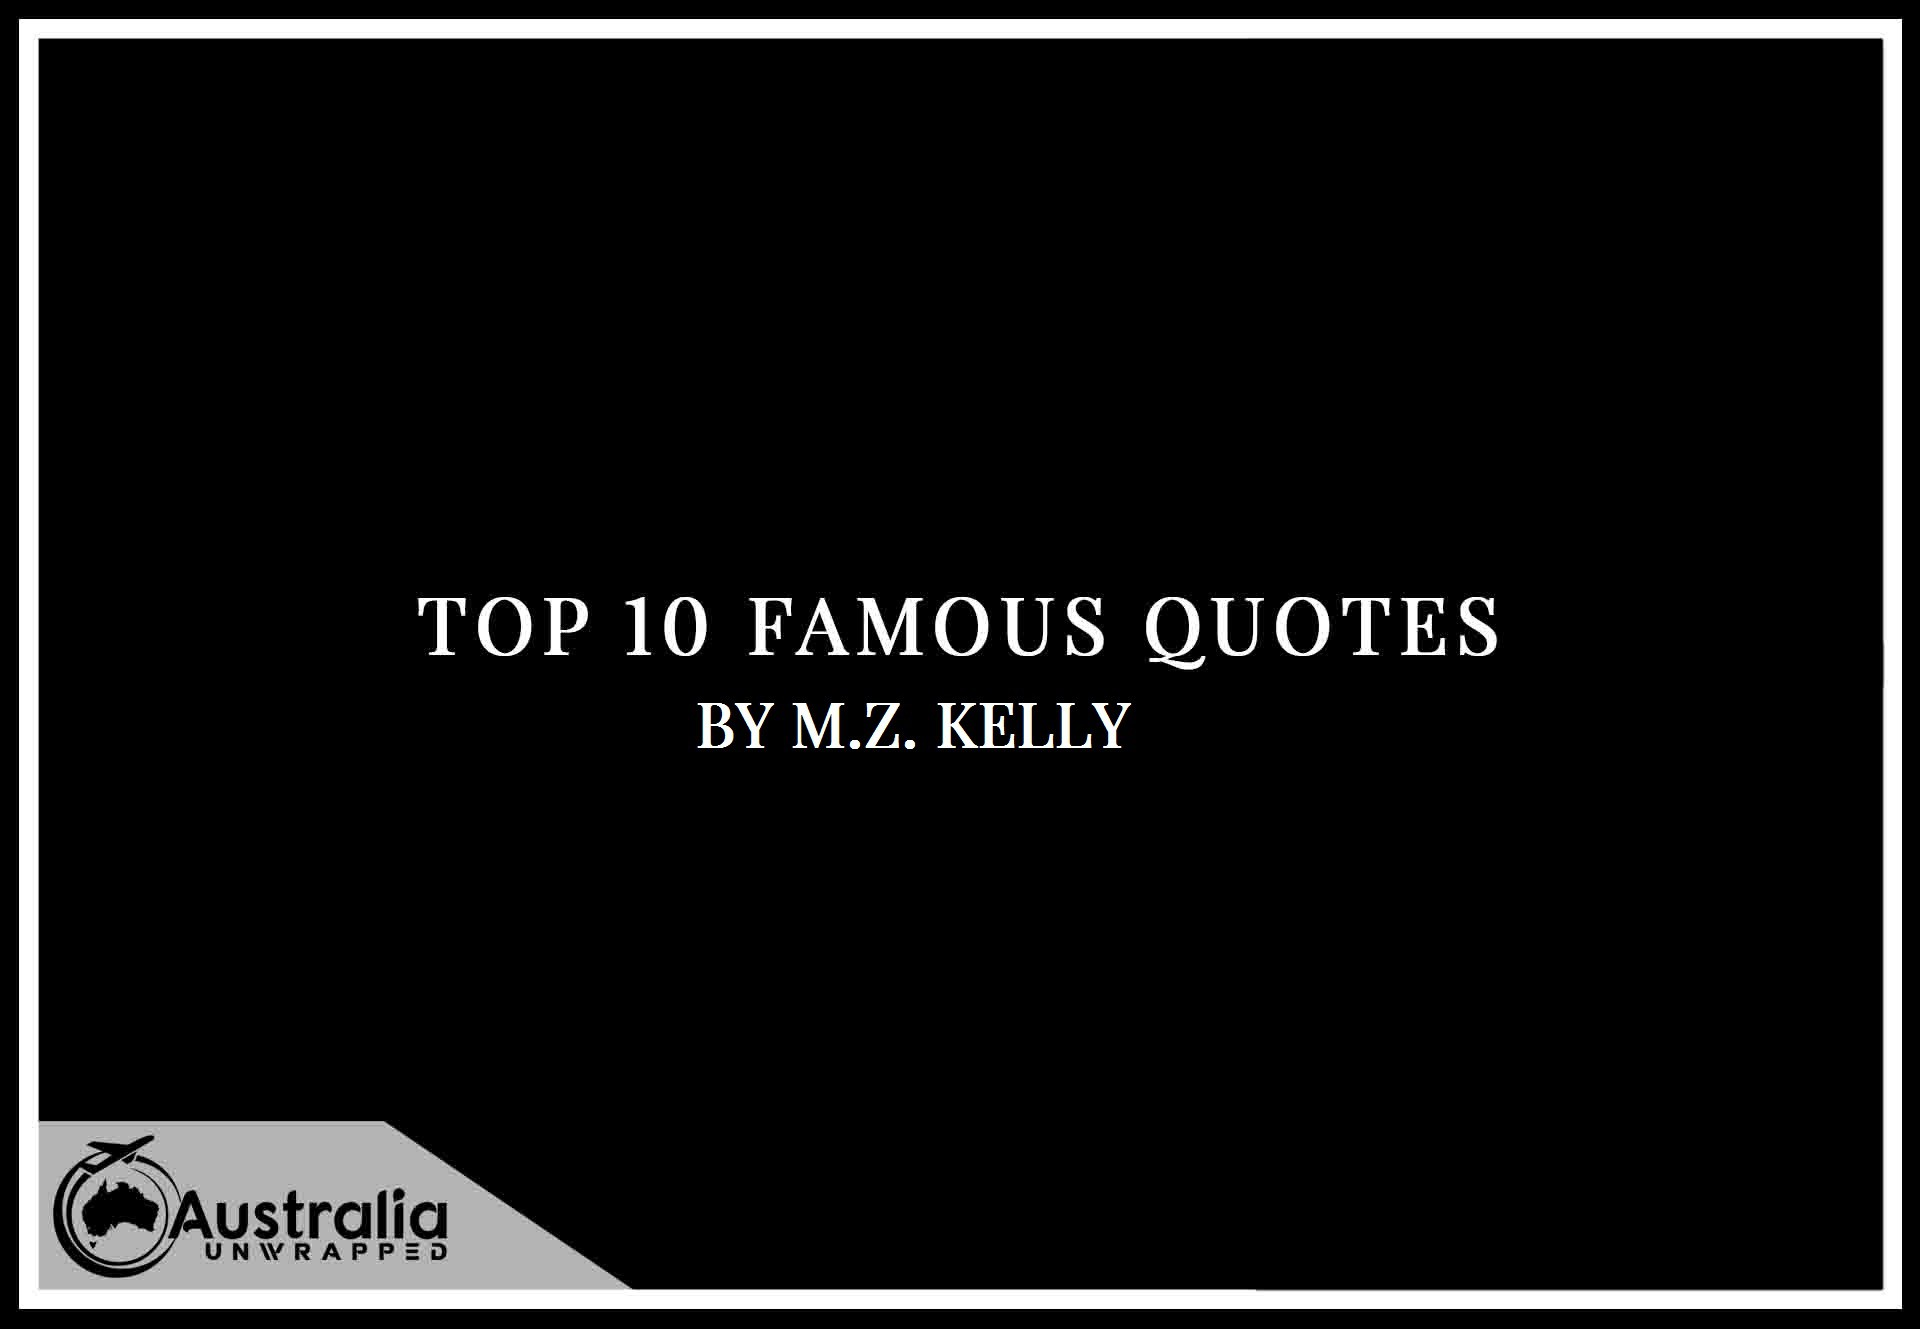 M.Z. Kelly's Top 10 Popular and Famous Quotes